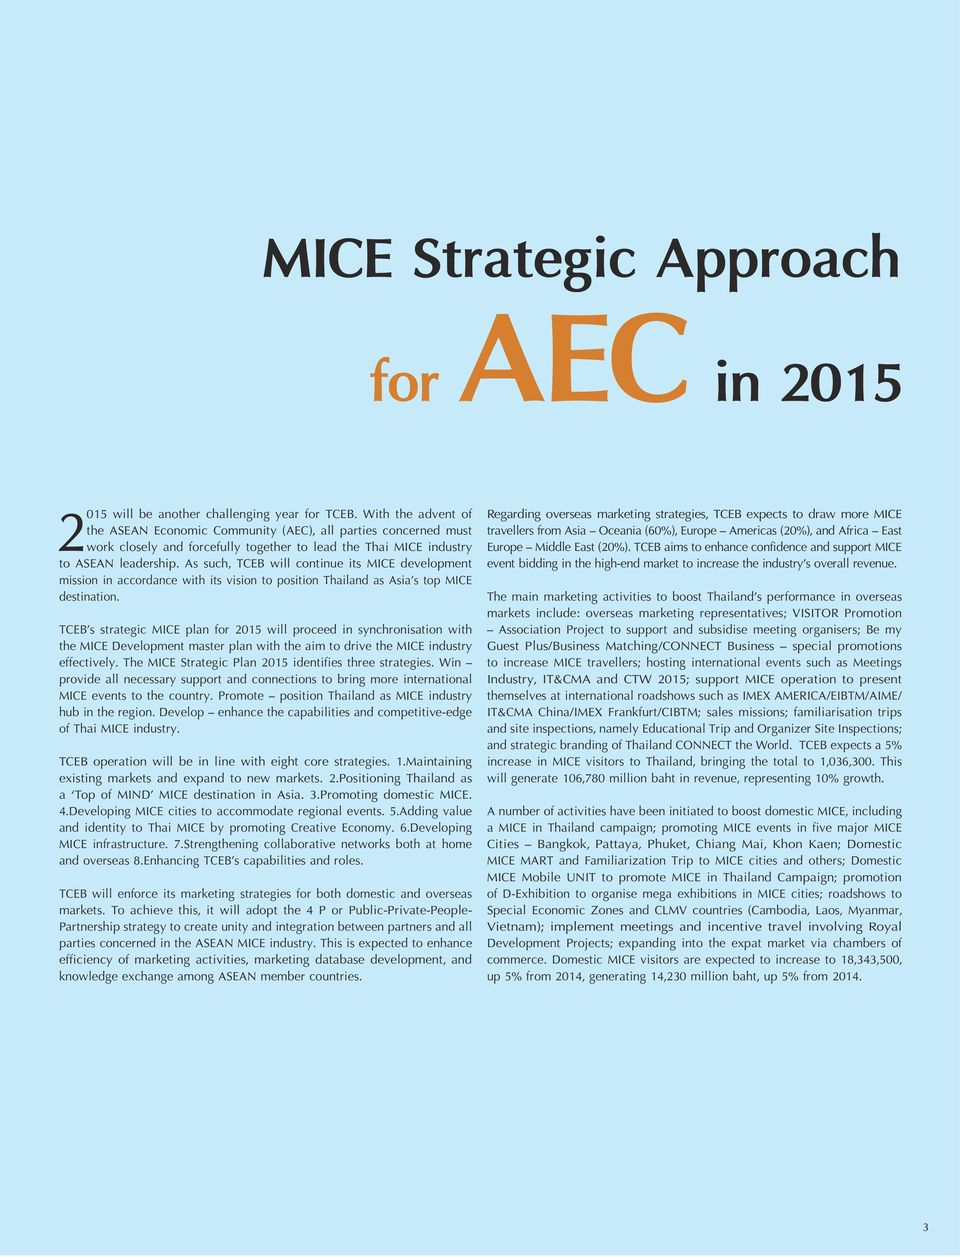 As such, TCEB will continue its MICE development mission in accordance with its vision to position Thailand as Asia s top MICE destination.